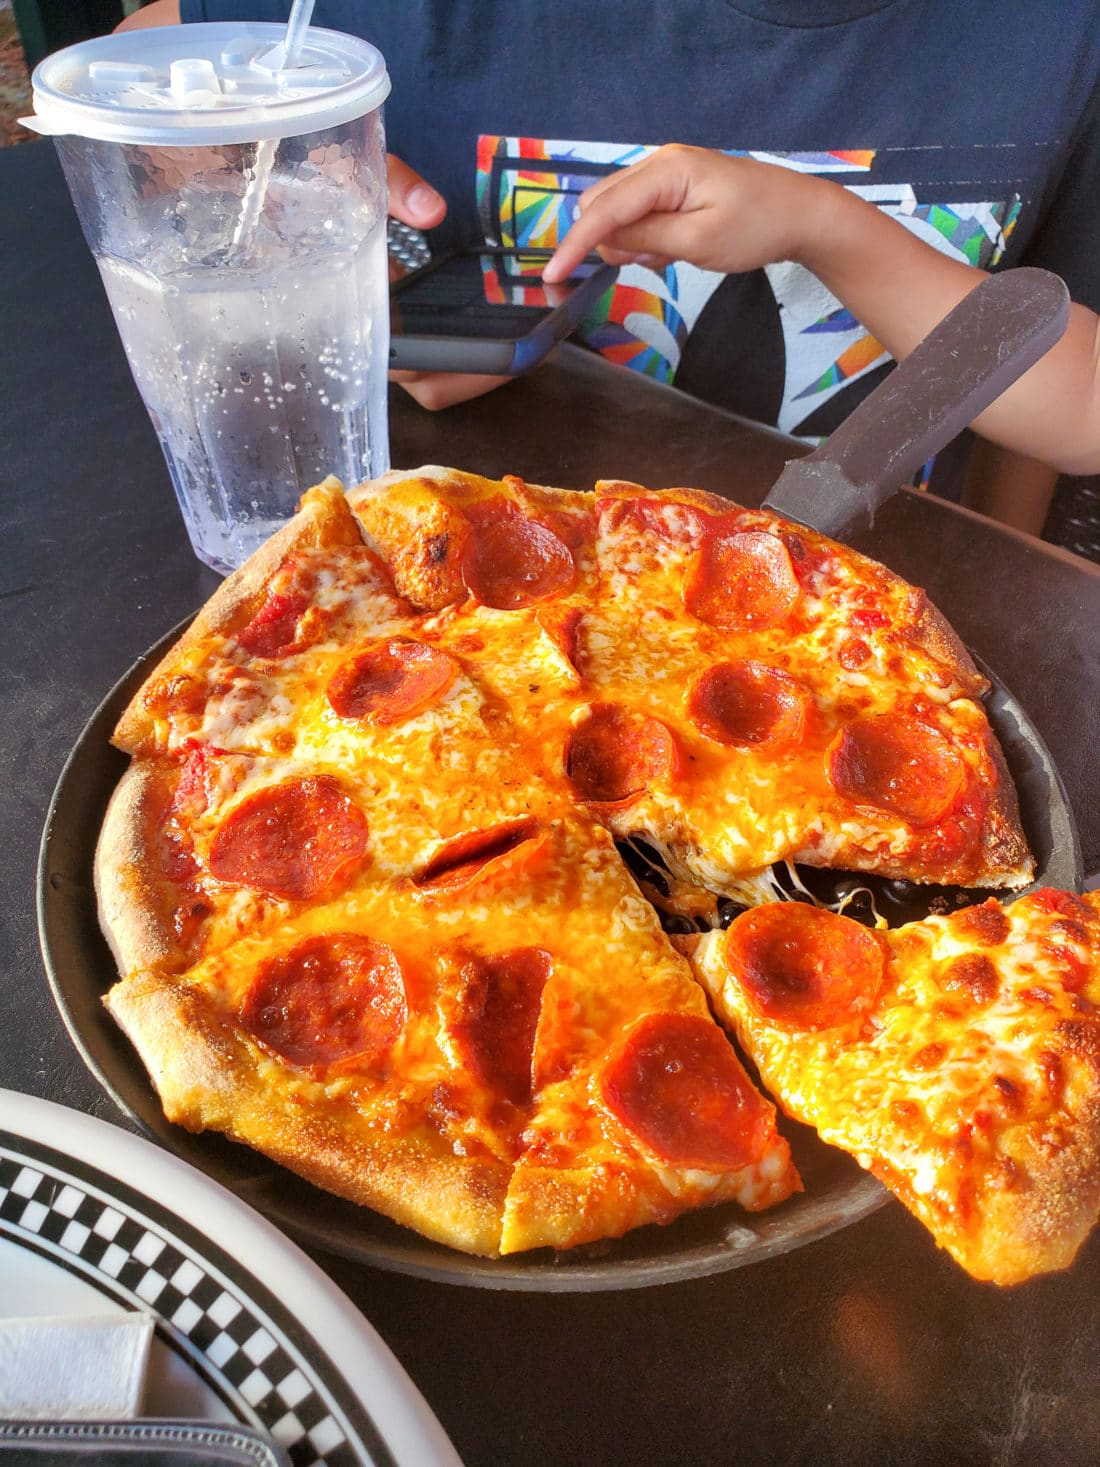 Big Daddy's Pizzeria Pepperoni Pizza. This is not your average pizza pie!At the heart of Big Daddy's is a 550 degree, wood-fired flame inside of a one-of-a-kind brick oven. Read all about why this freshly made pizza is my families go to pizza joint in Pigeon Forge, TN.